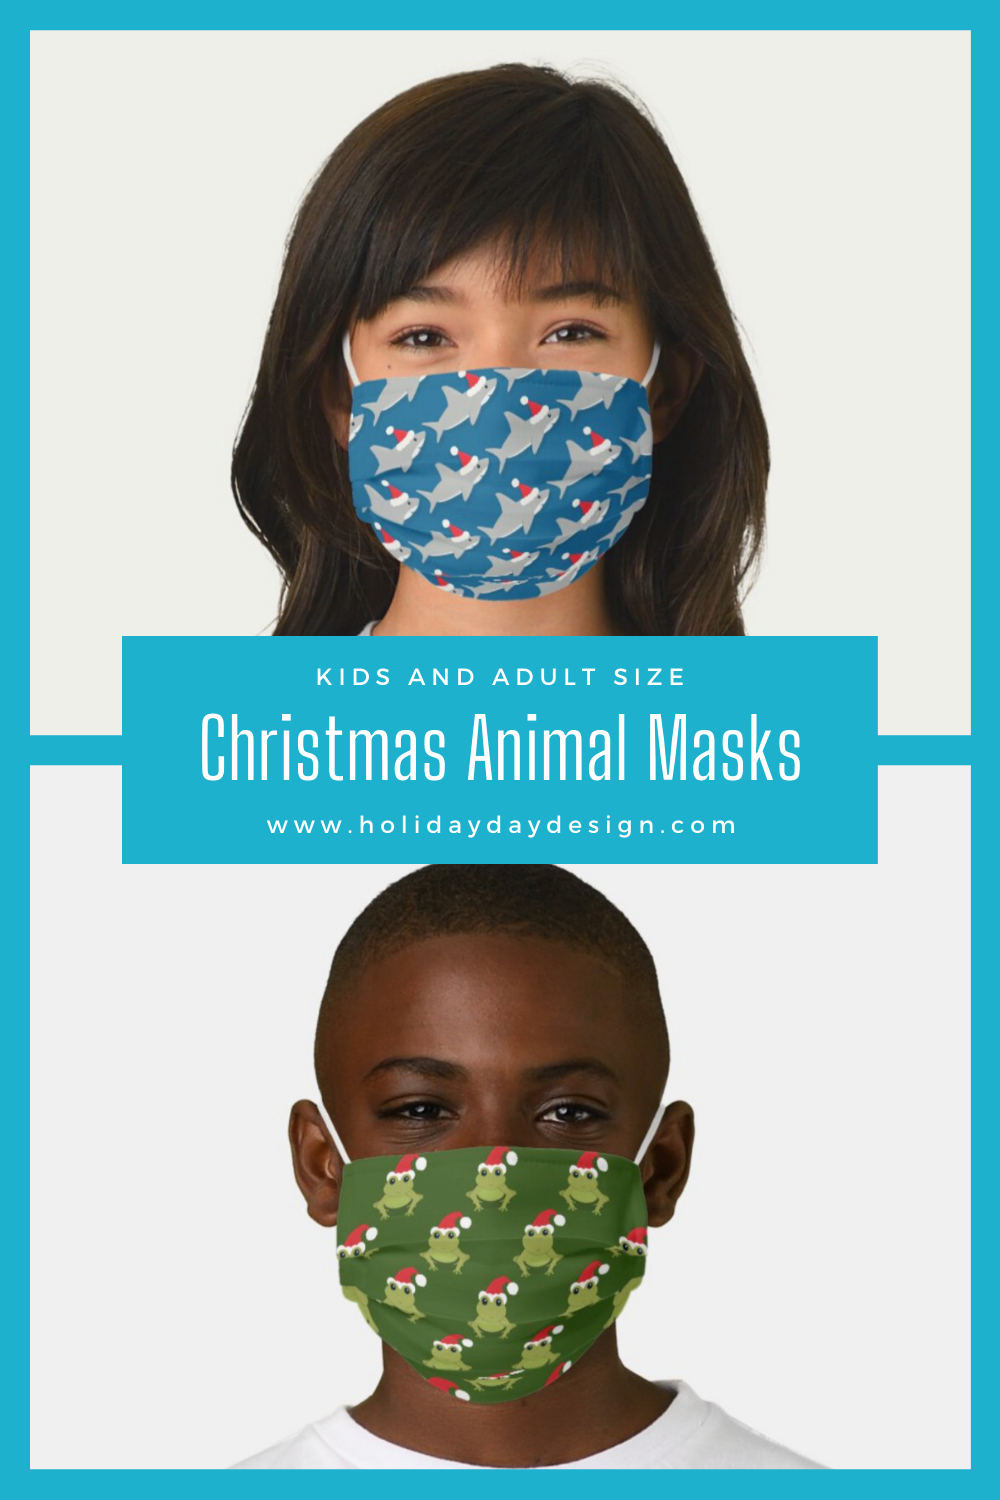 Kids and adult size Christmas animal face masks for sale